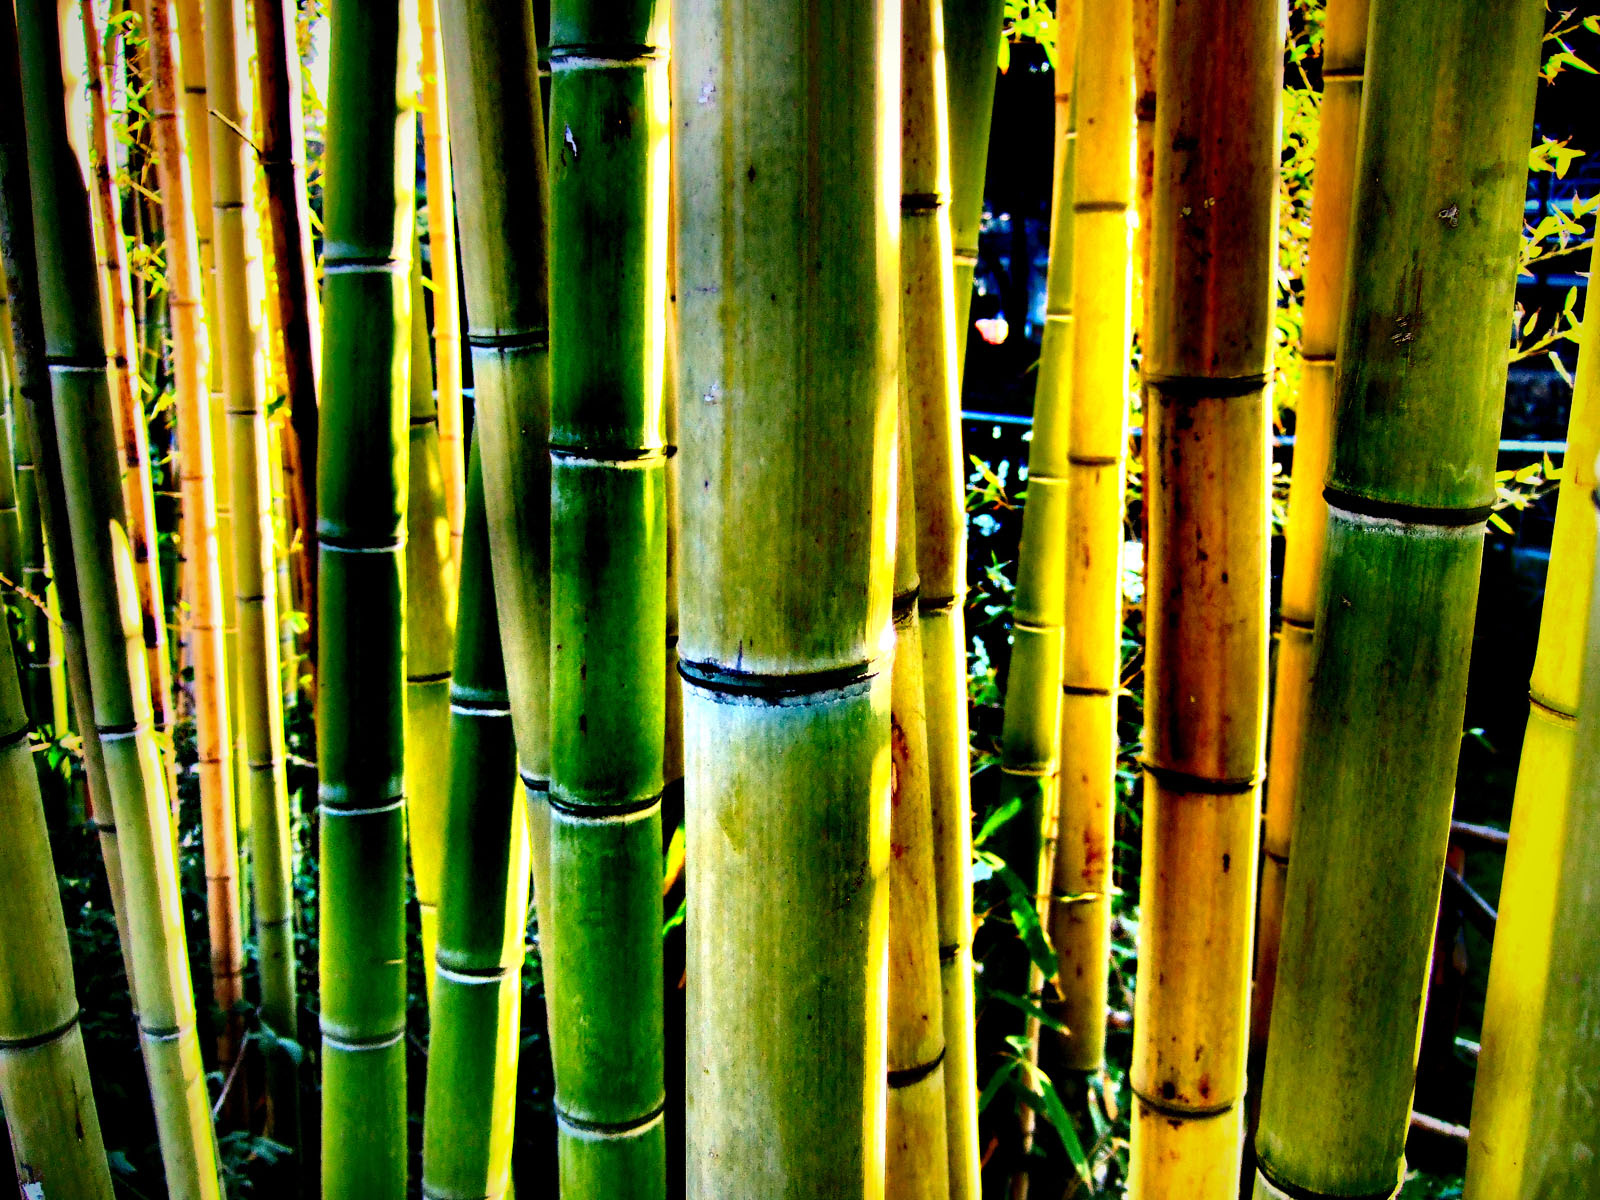 Bamboo wallpapers amazing picture collection for Bamboo wallpaper for walls